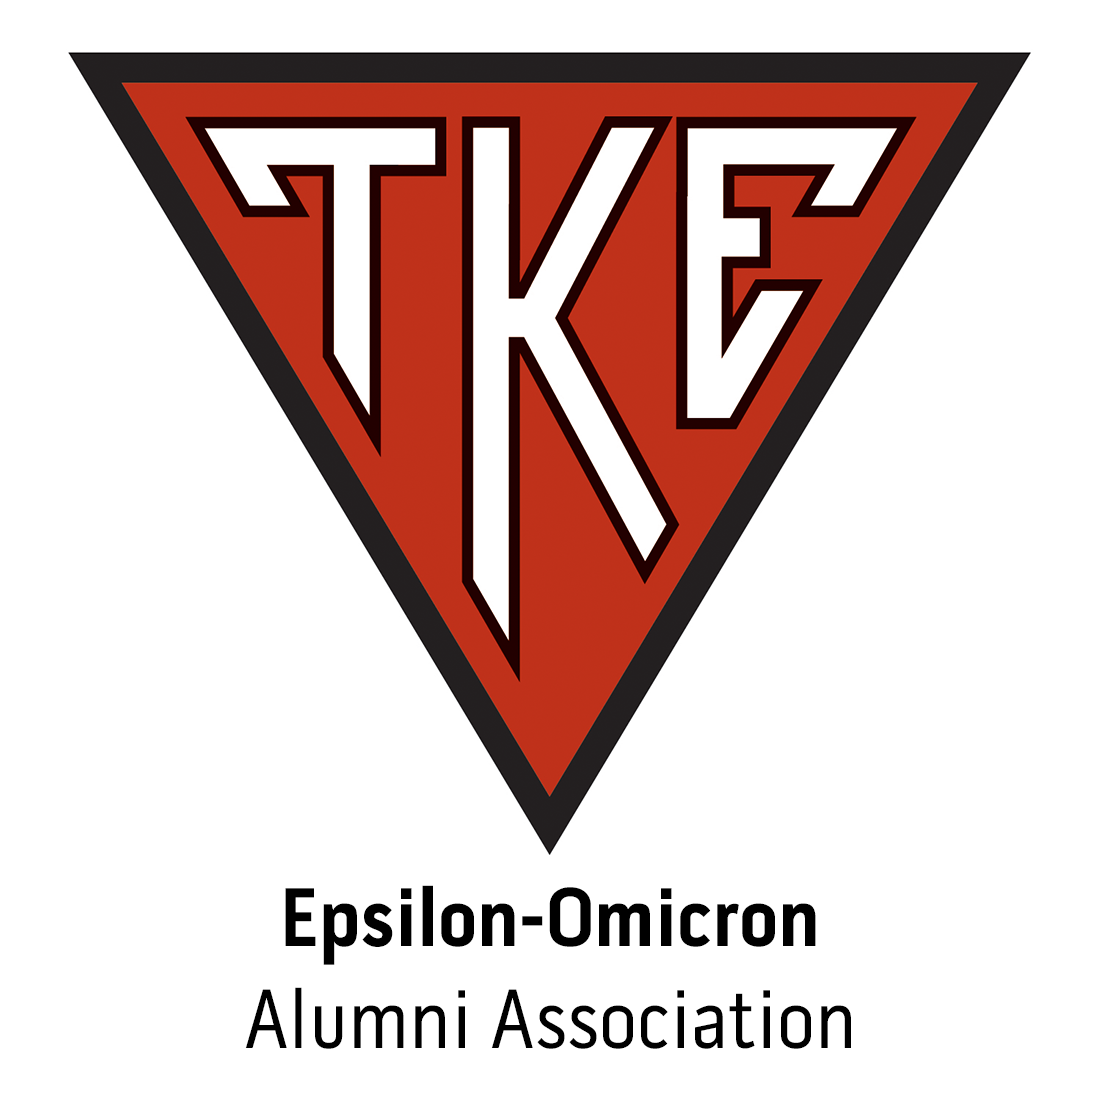 Epsilon-Omicron Alumni Association at University of Houston